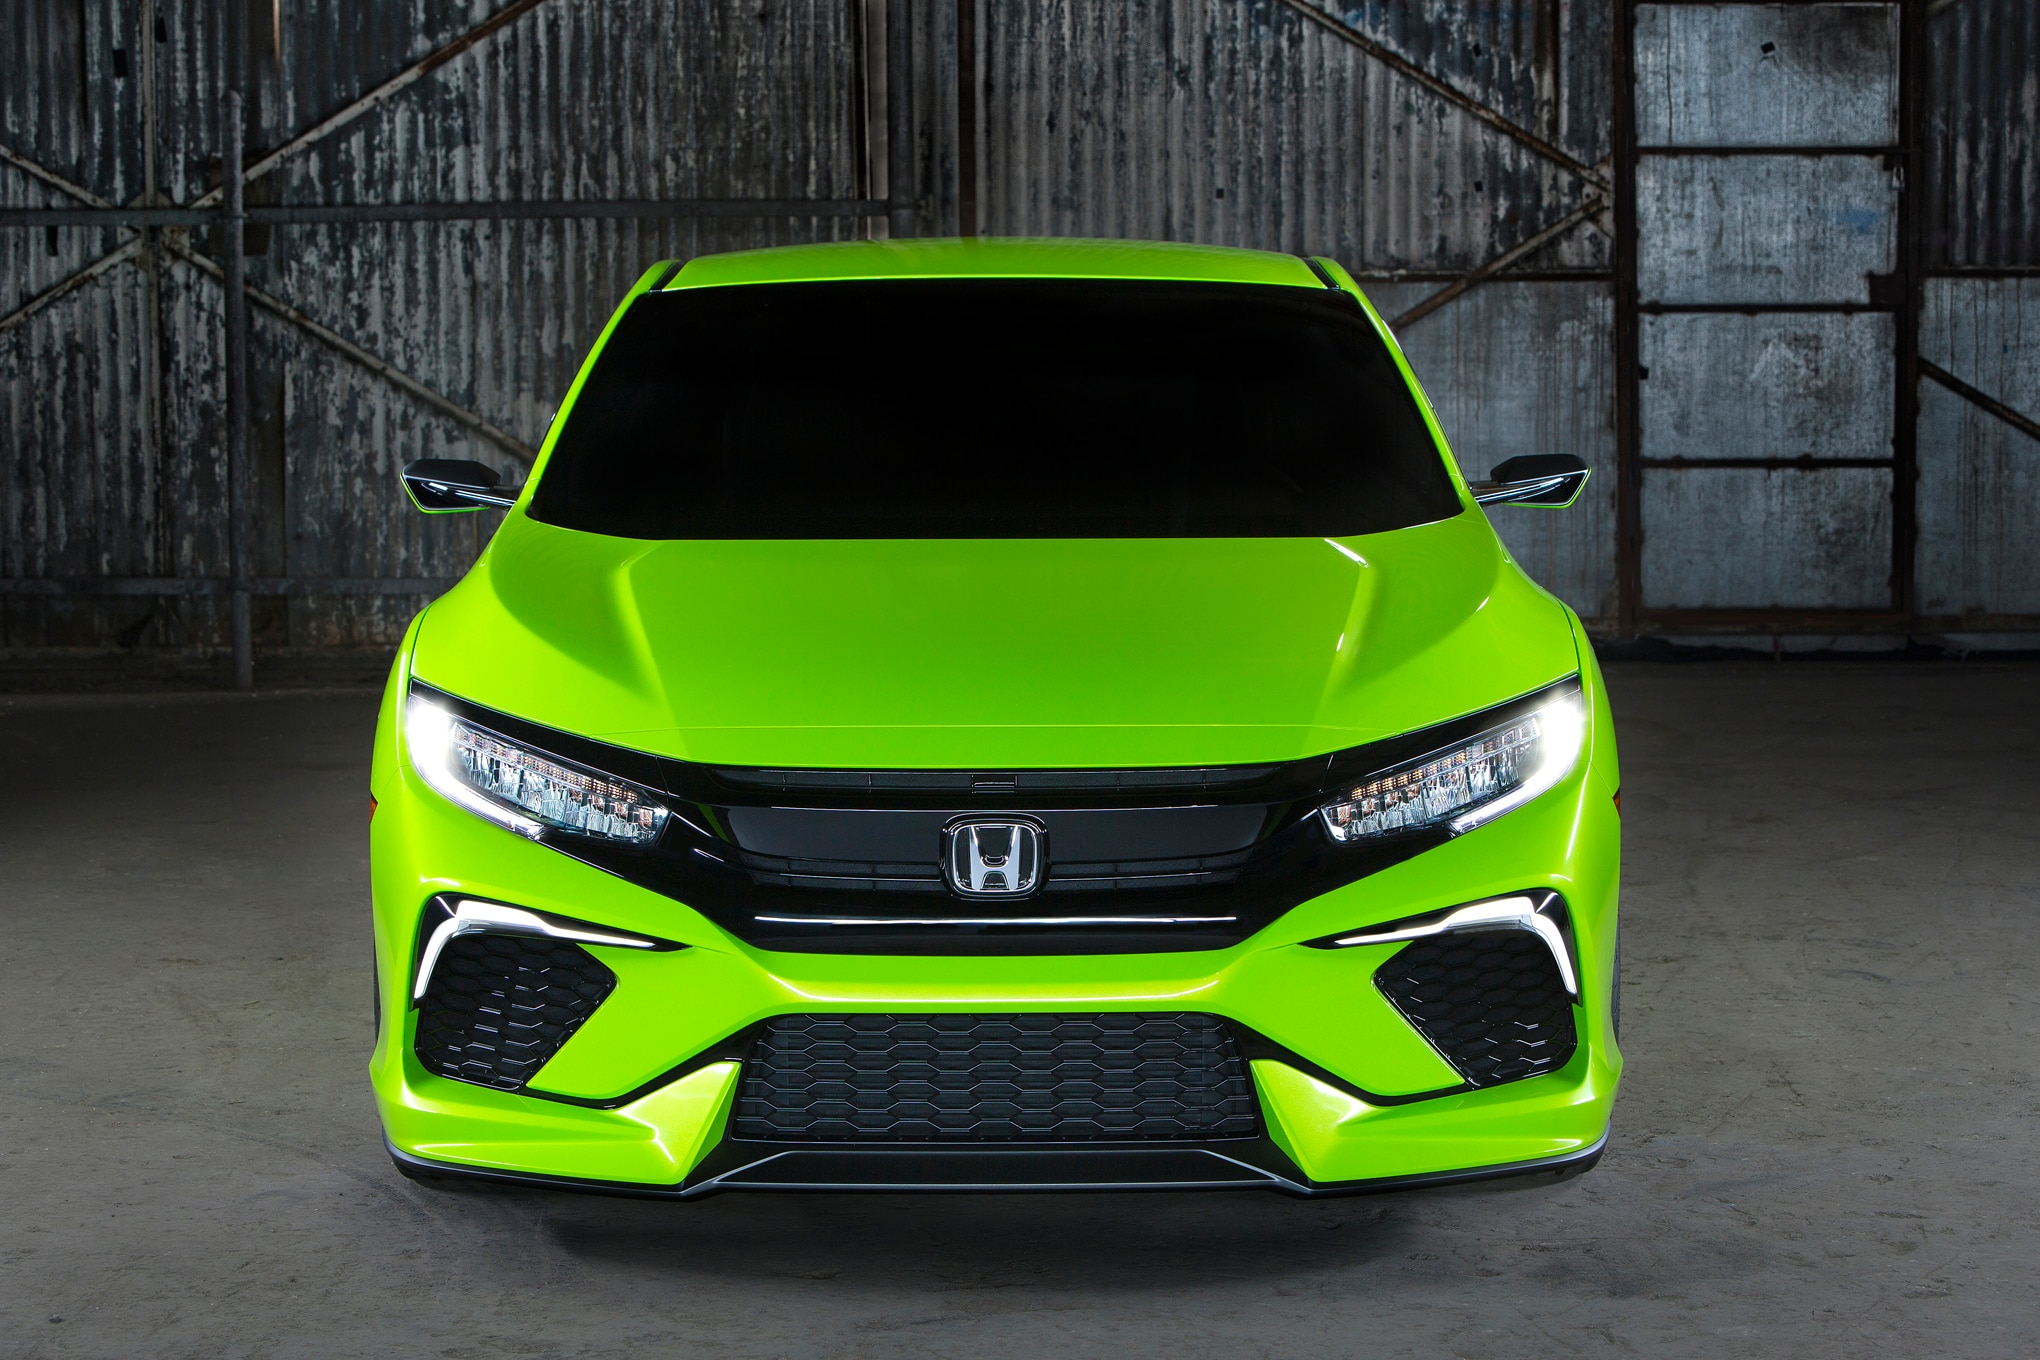 2016 Honda Civic Concept Makes Surprise Appearance In New York